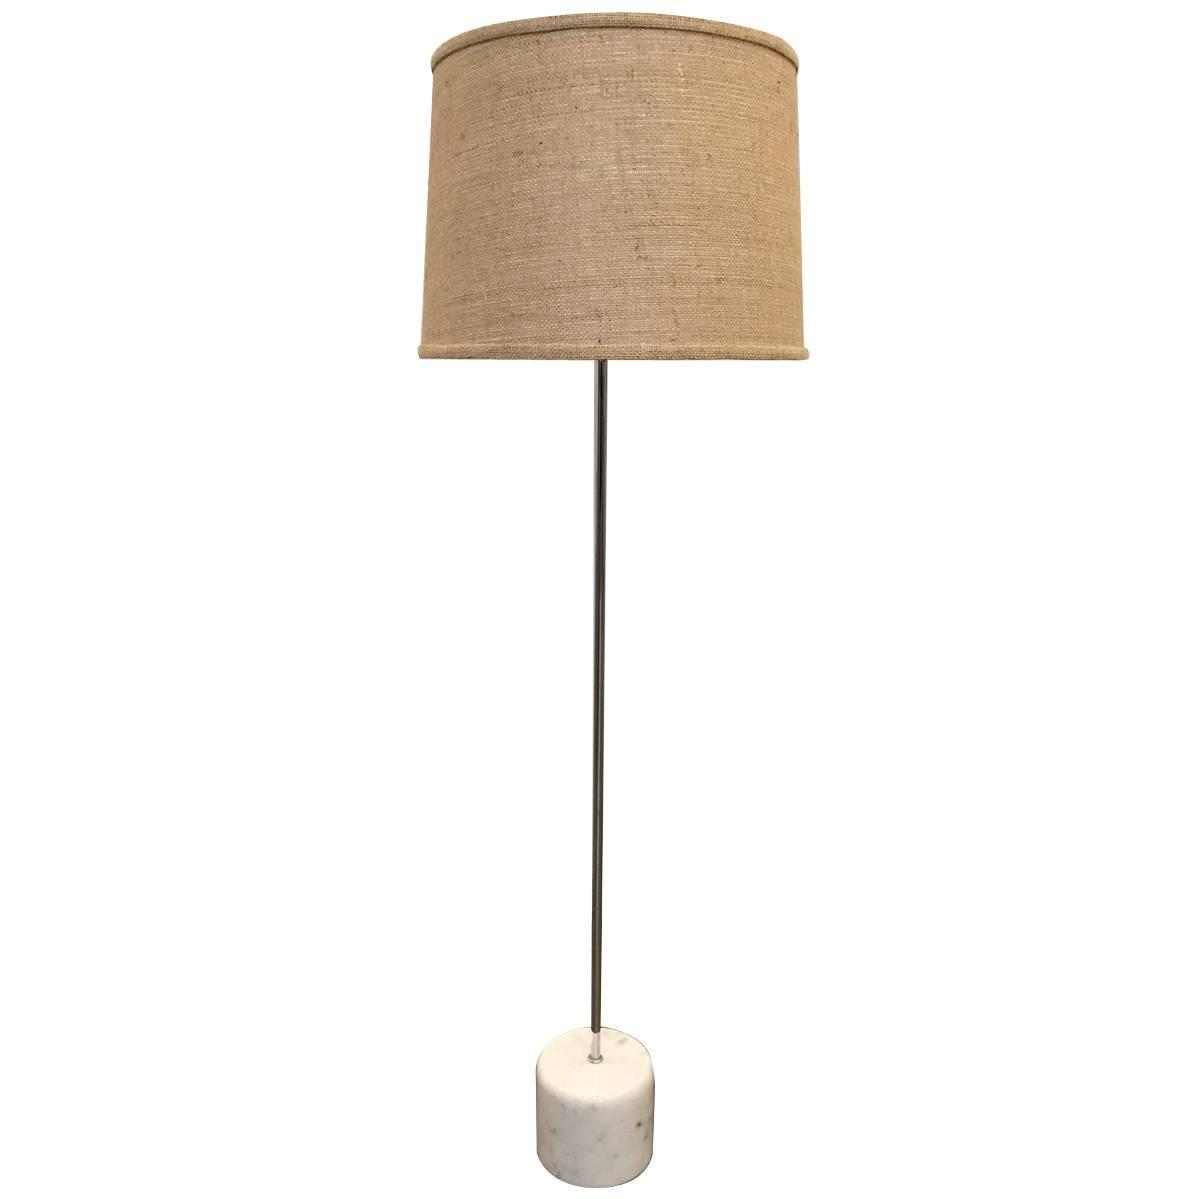 chrome and marble base floor lamp by nessen for sale at 1stdibs. Black Bedroom Furniture Sets. Home Design Ideas